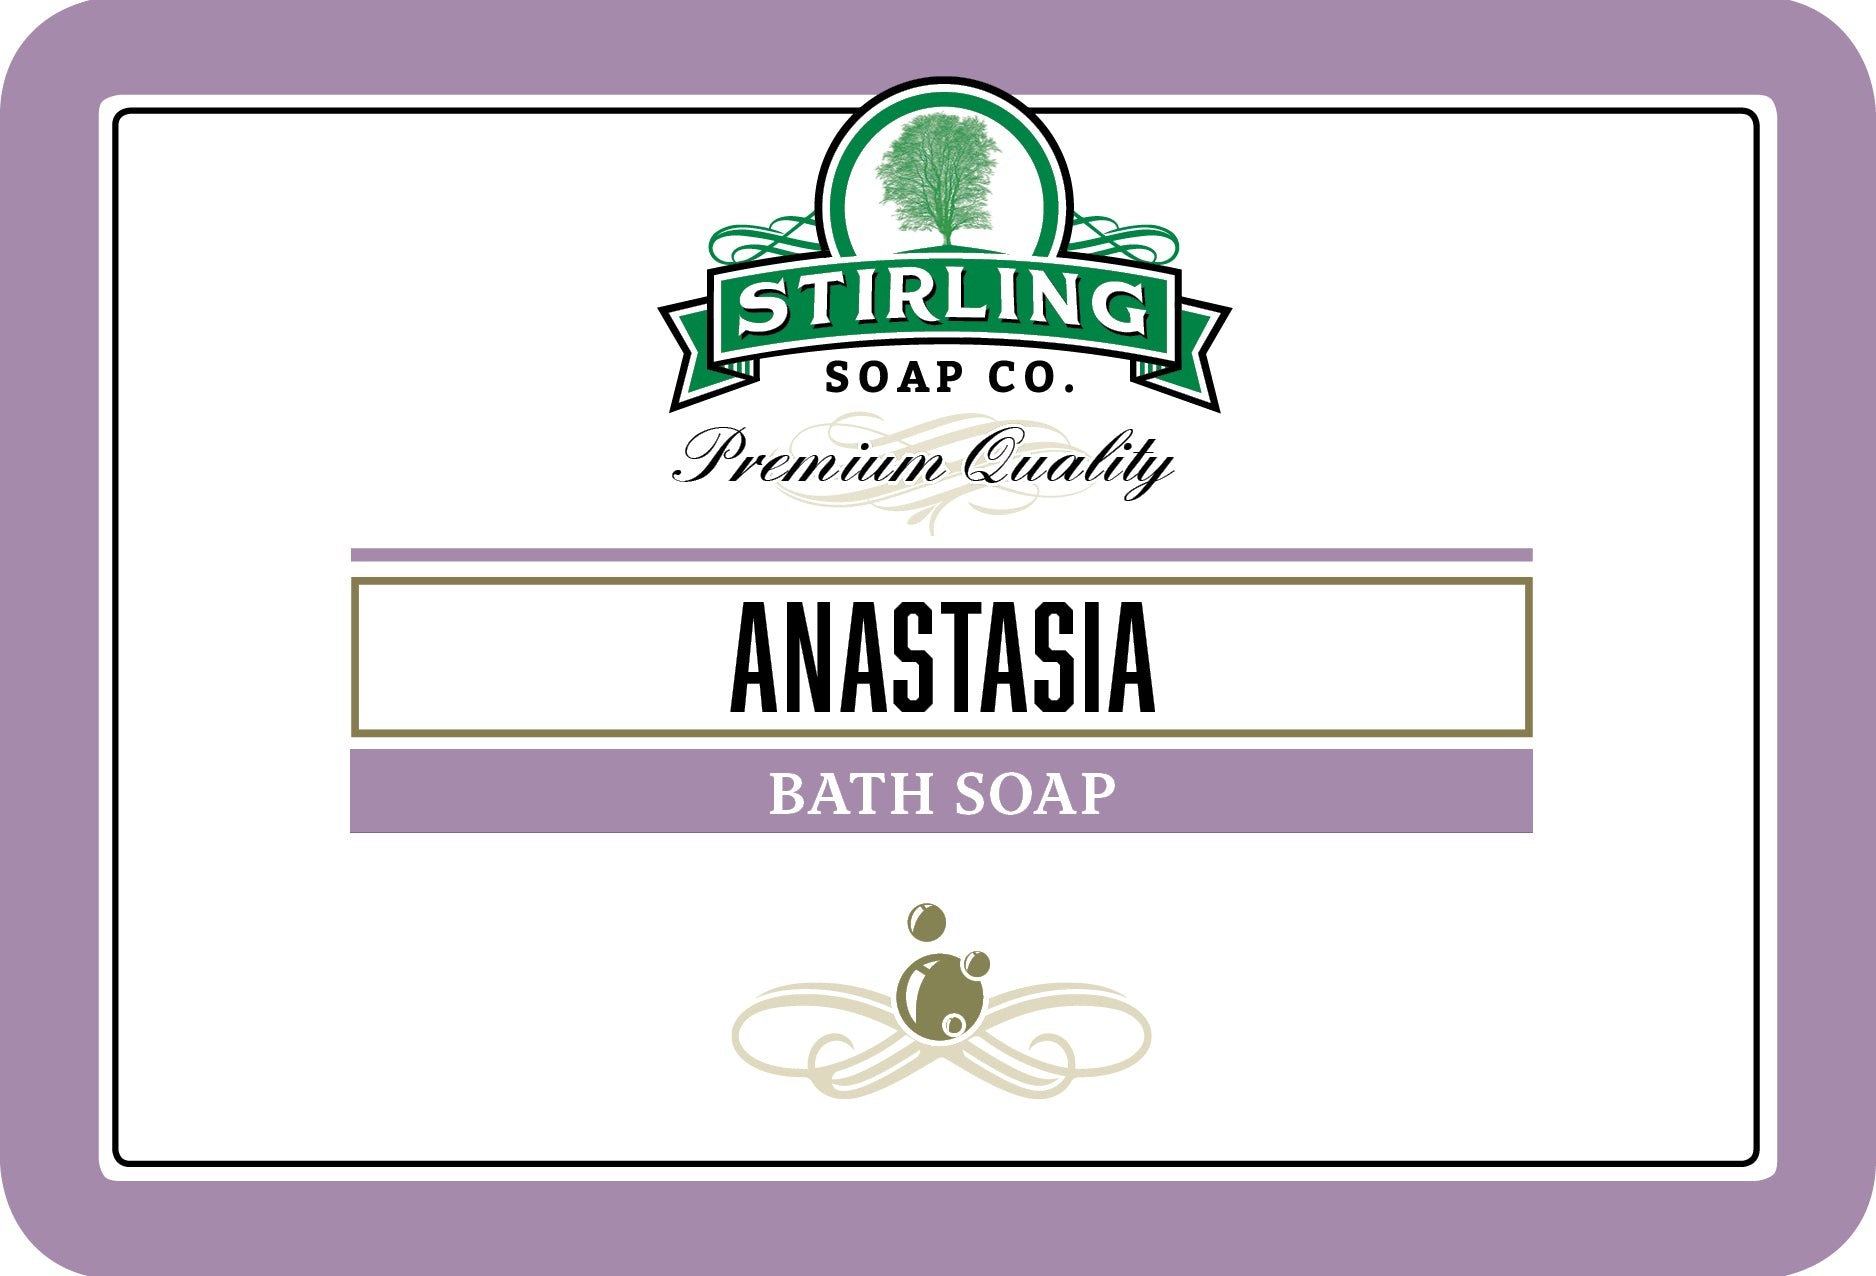 Anastasia - Bath Soap